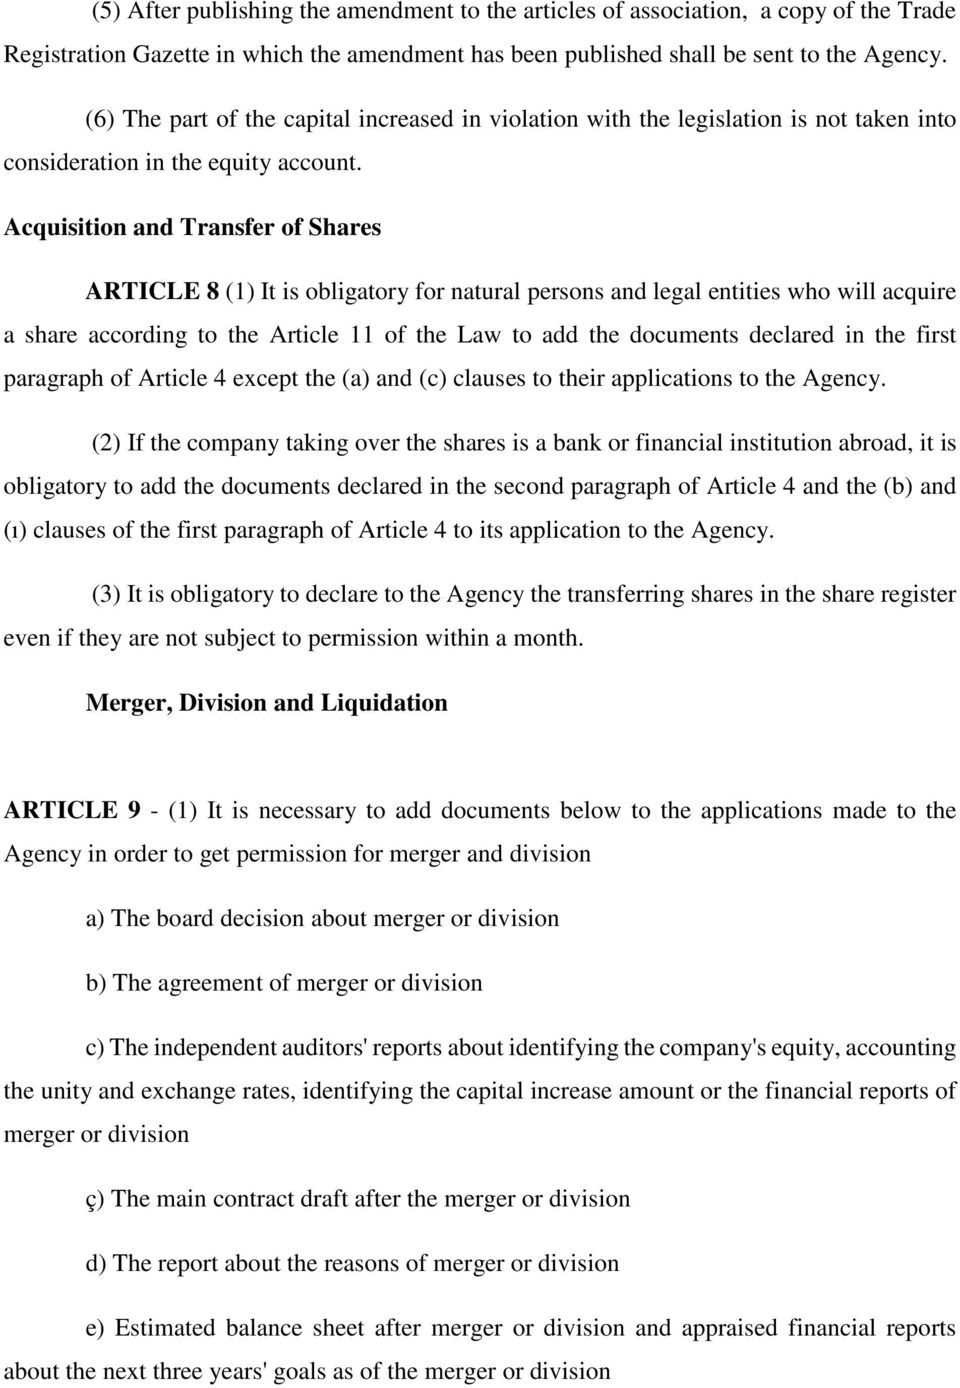 Acquisition and Transfer of Shares ARTICLE 8 (1) It is obligatory for natural persons and legal entities who will acquire a share according to the Article 11 of the Law to add the documents declared